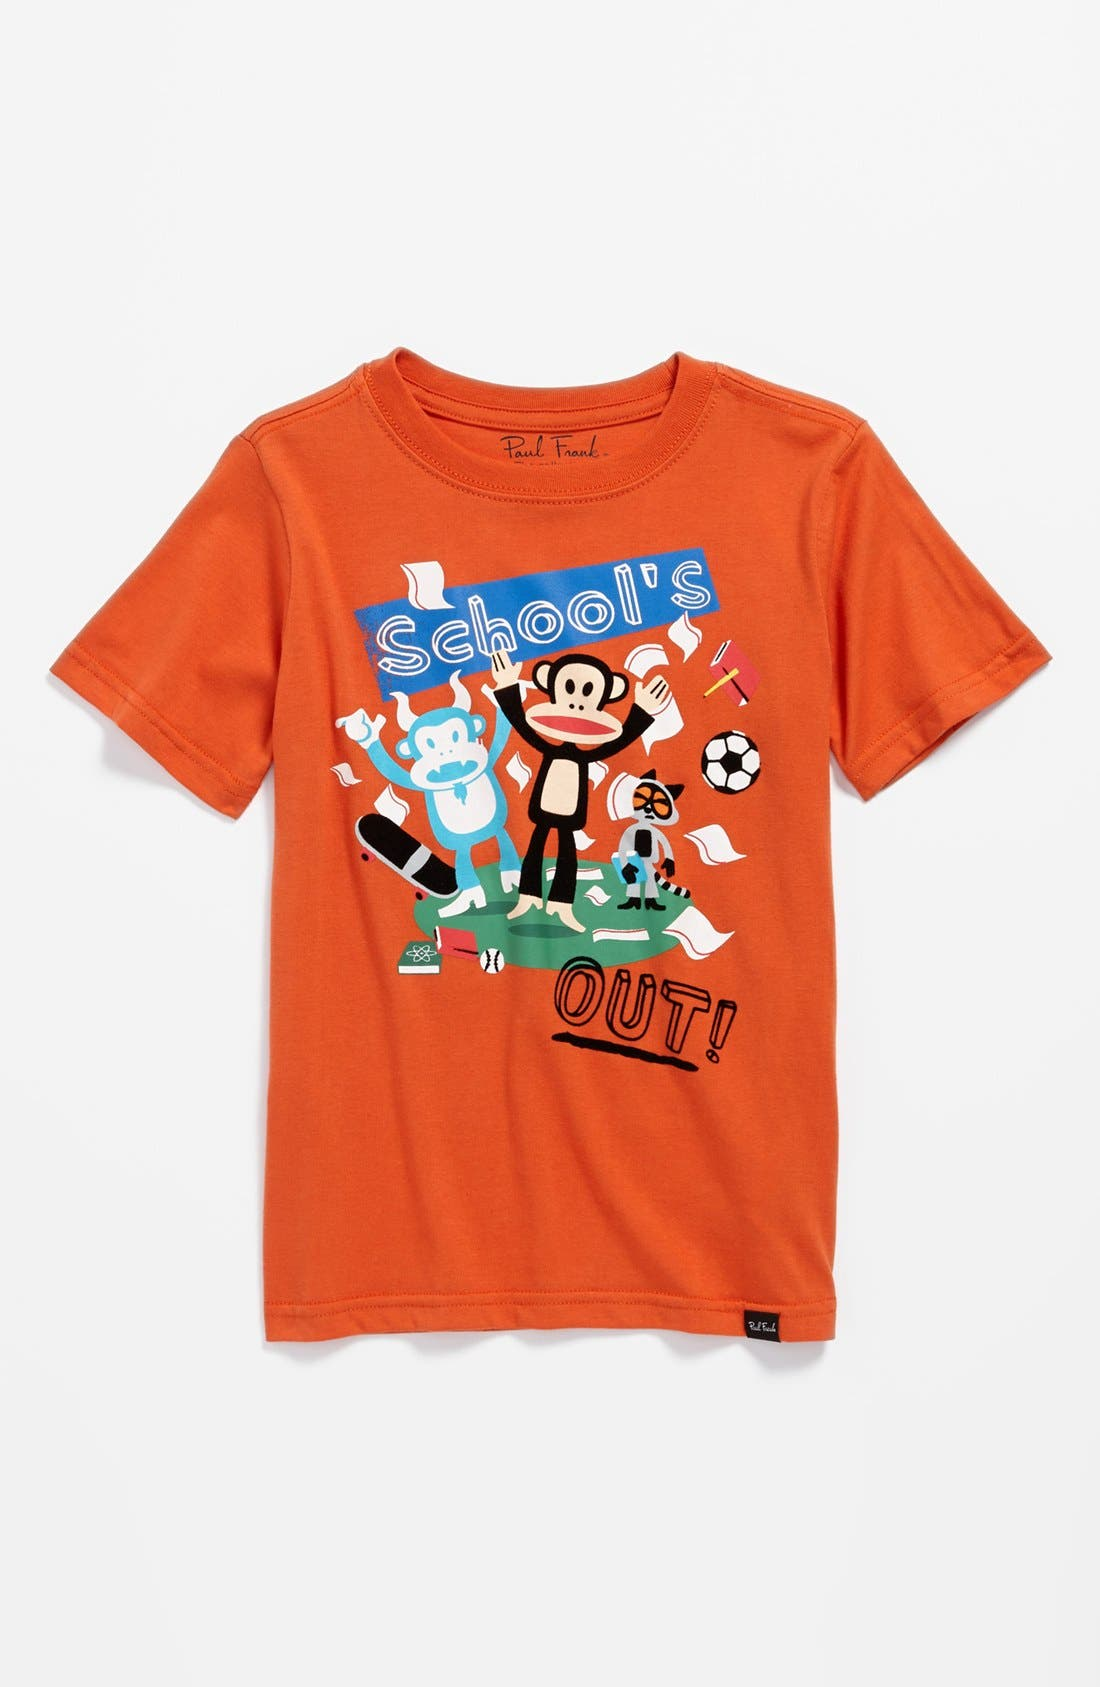 Alternate Image 1 Selected - Paul Frank 'School's Out' T-Shirt (Little Boys)